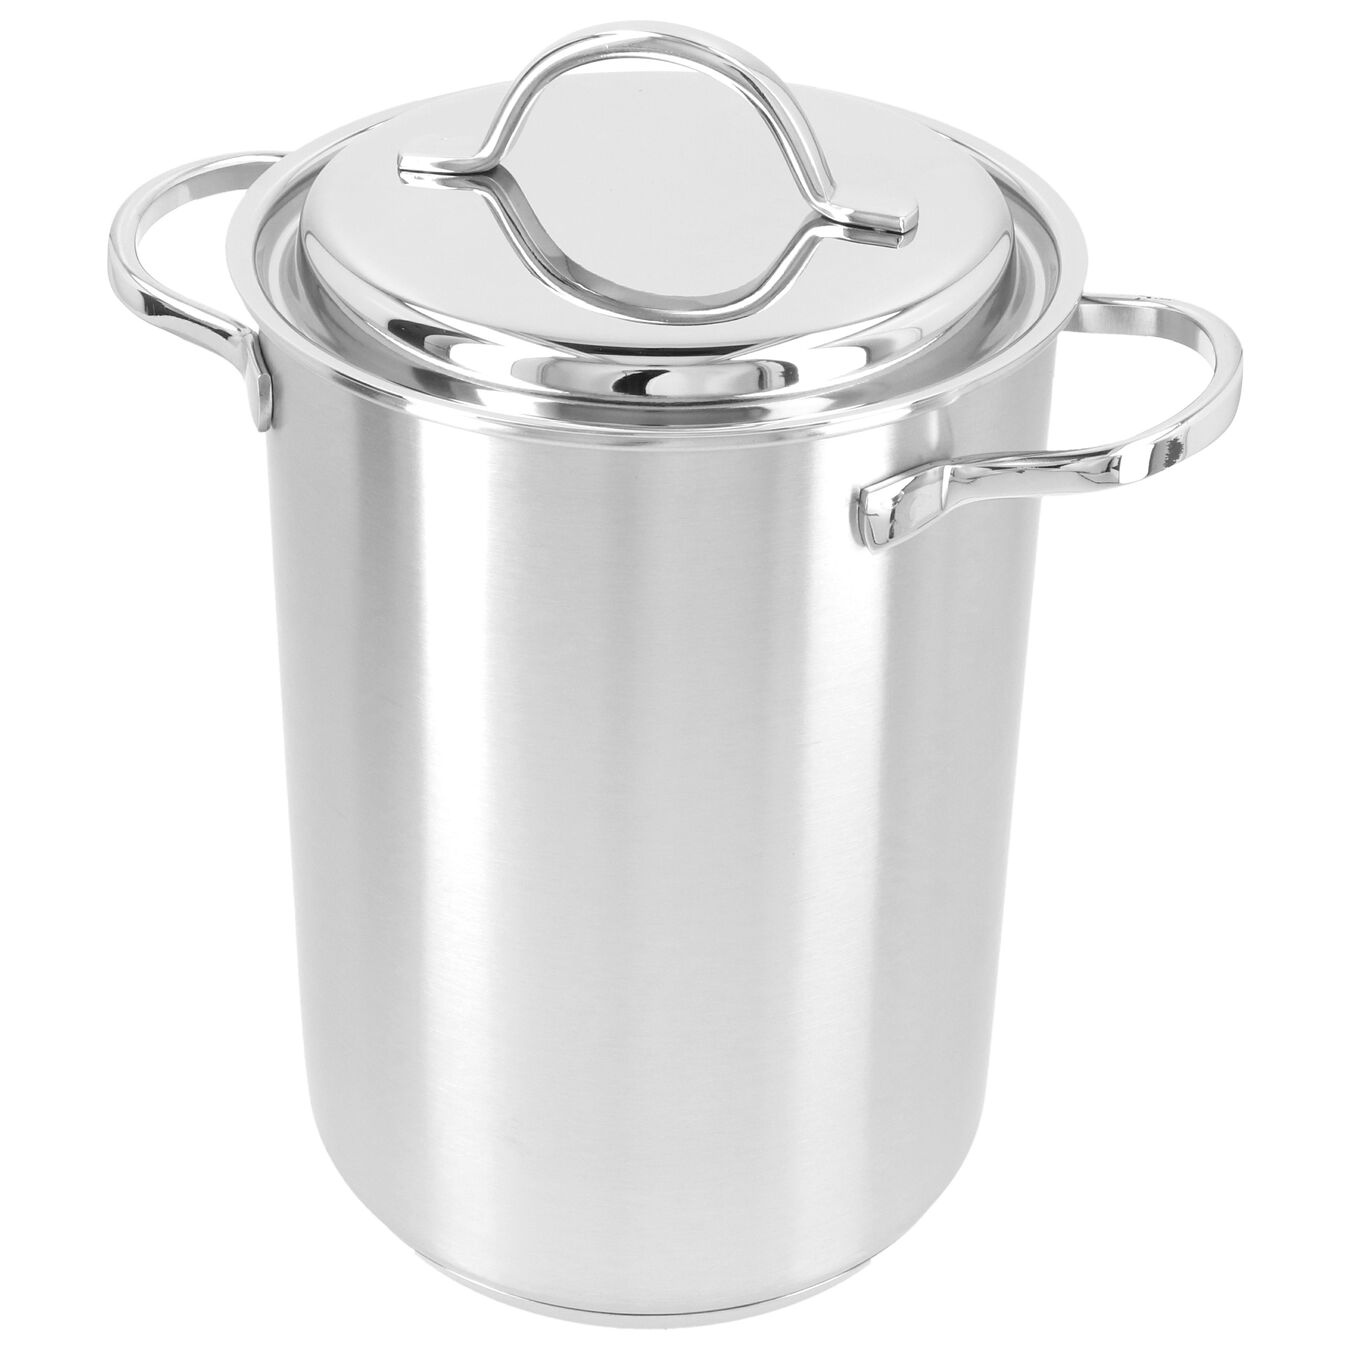 4.5 l 18/10 Stainless Steel Asparagus/Pastapot,,large 5